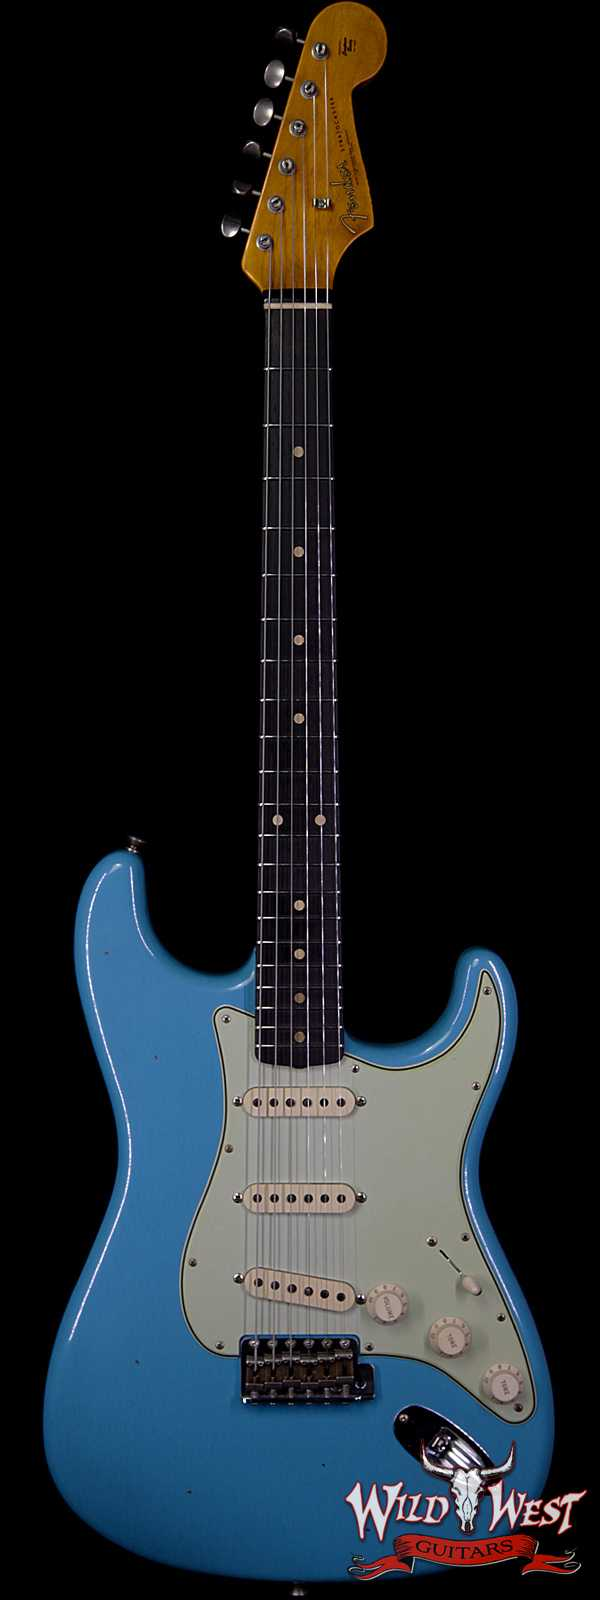 Fender Custom Shop 1961 Stratocaster Journeyman Relic with Dirty Neck AAA Rosewood Board Taos Turquoise